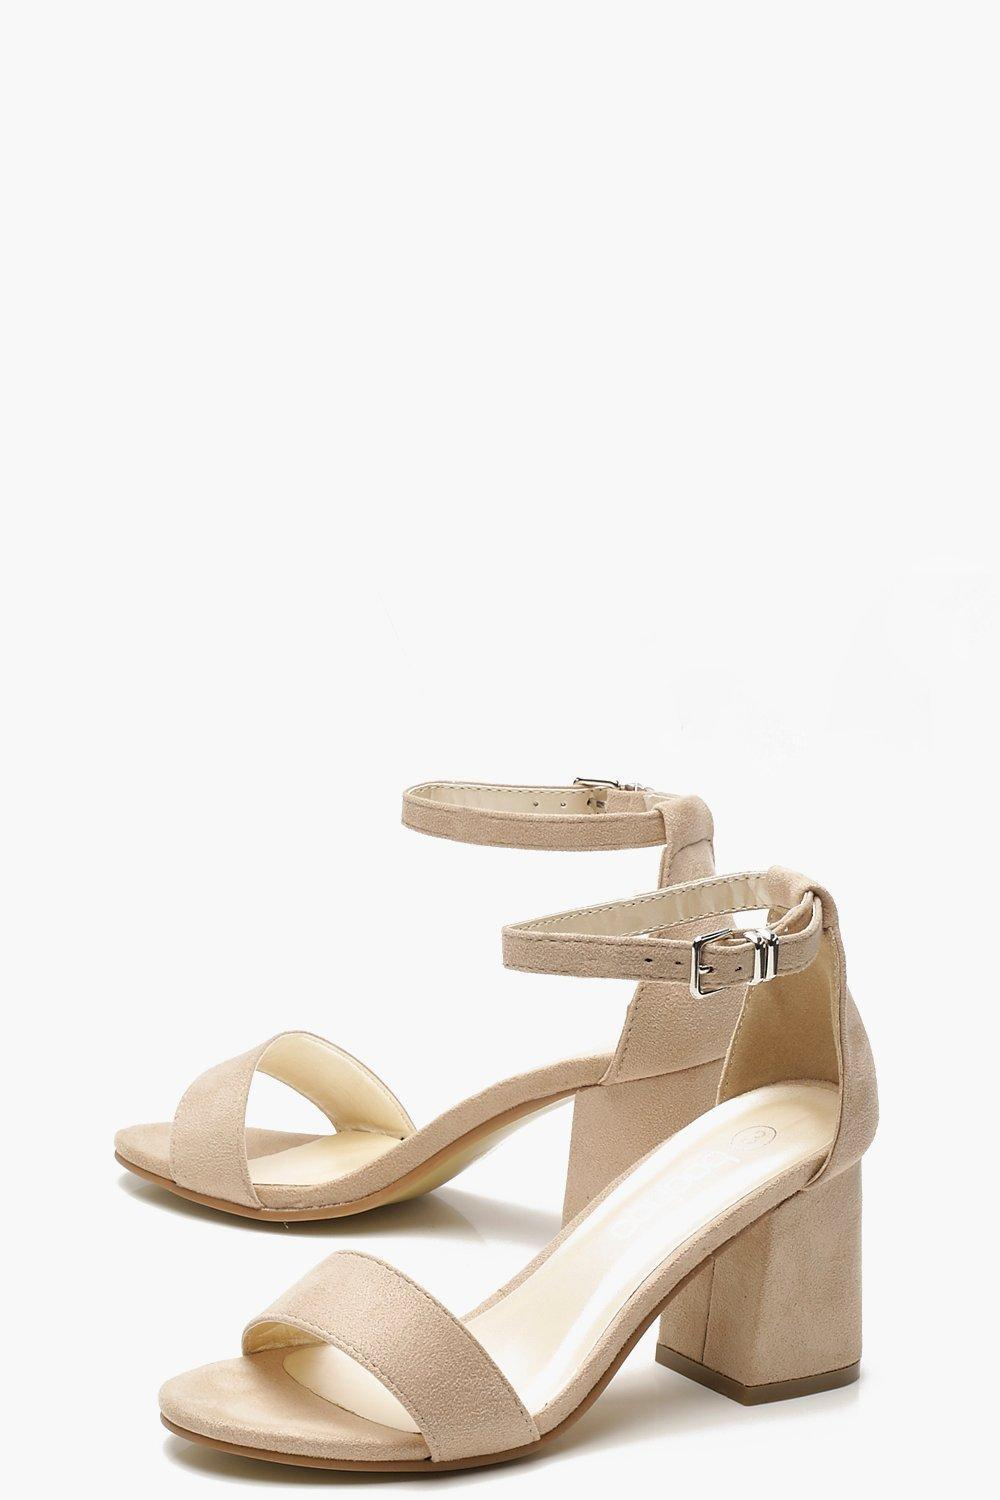 493fbd630a4a Lyst - Boohoo Rachel Low Block Heel Two Part